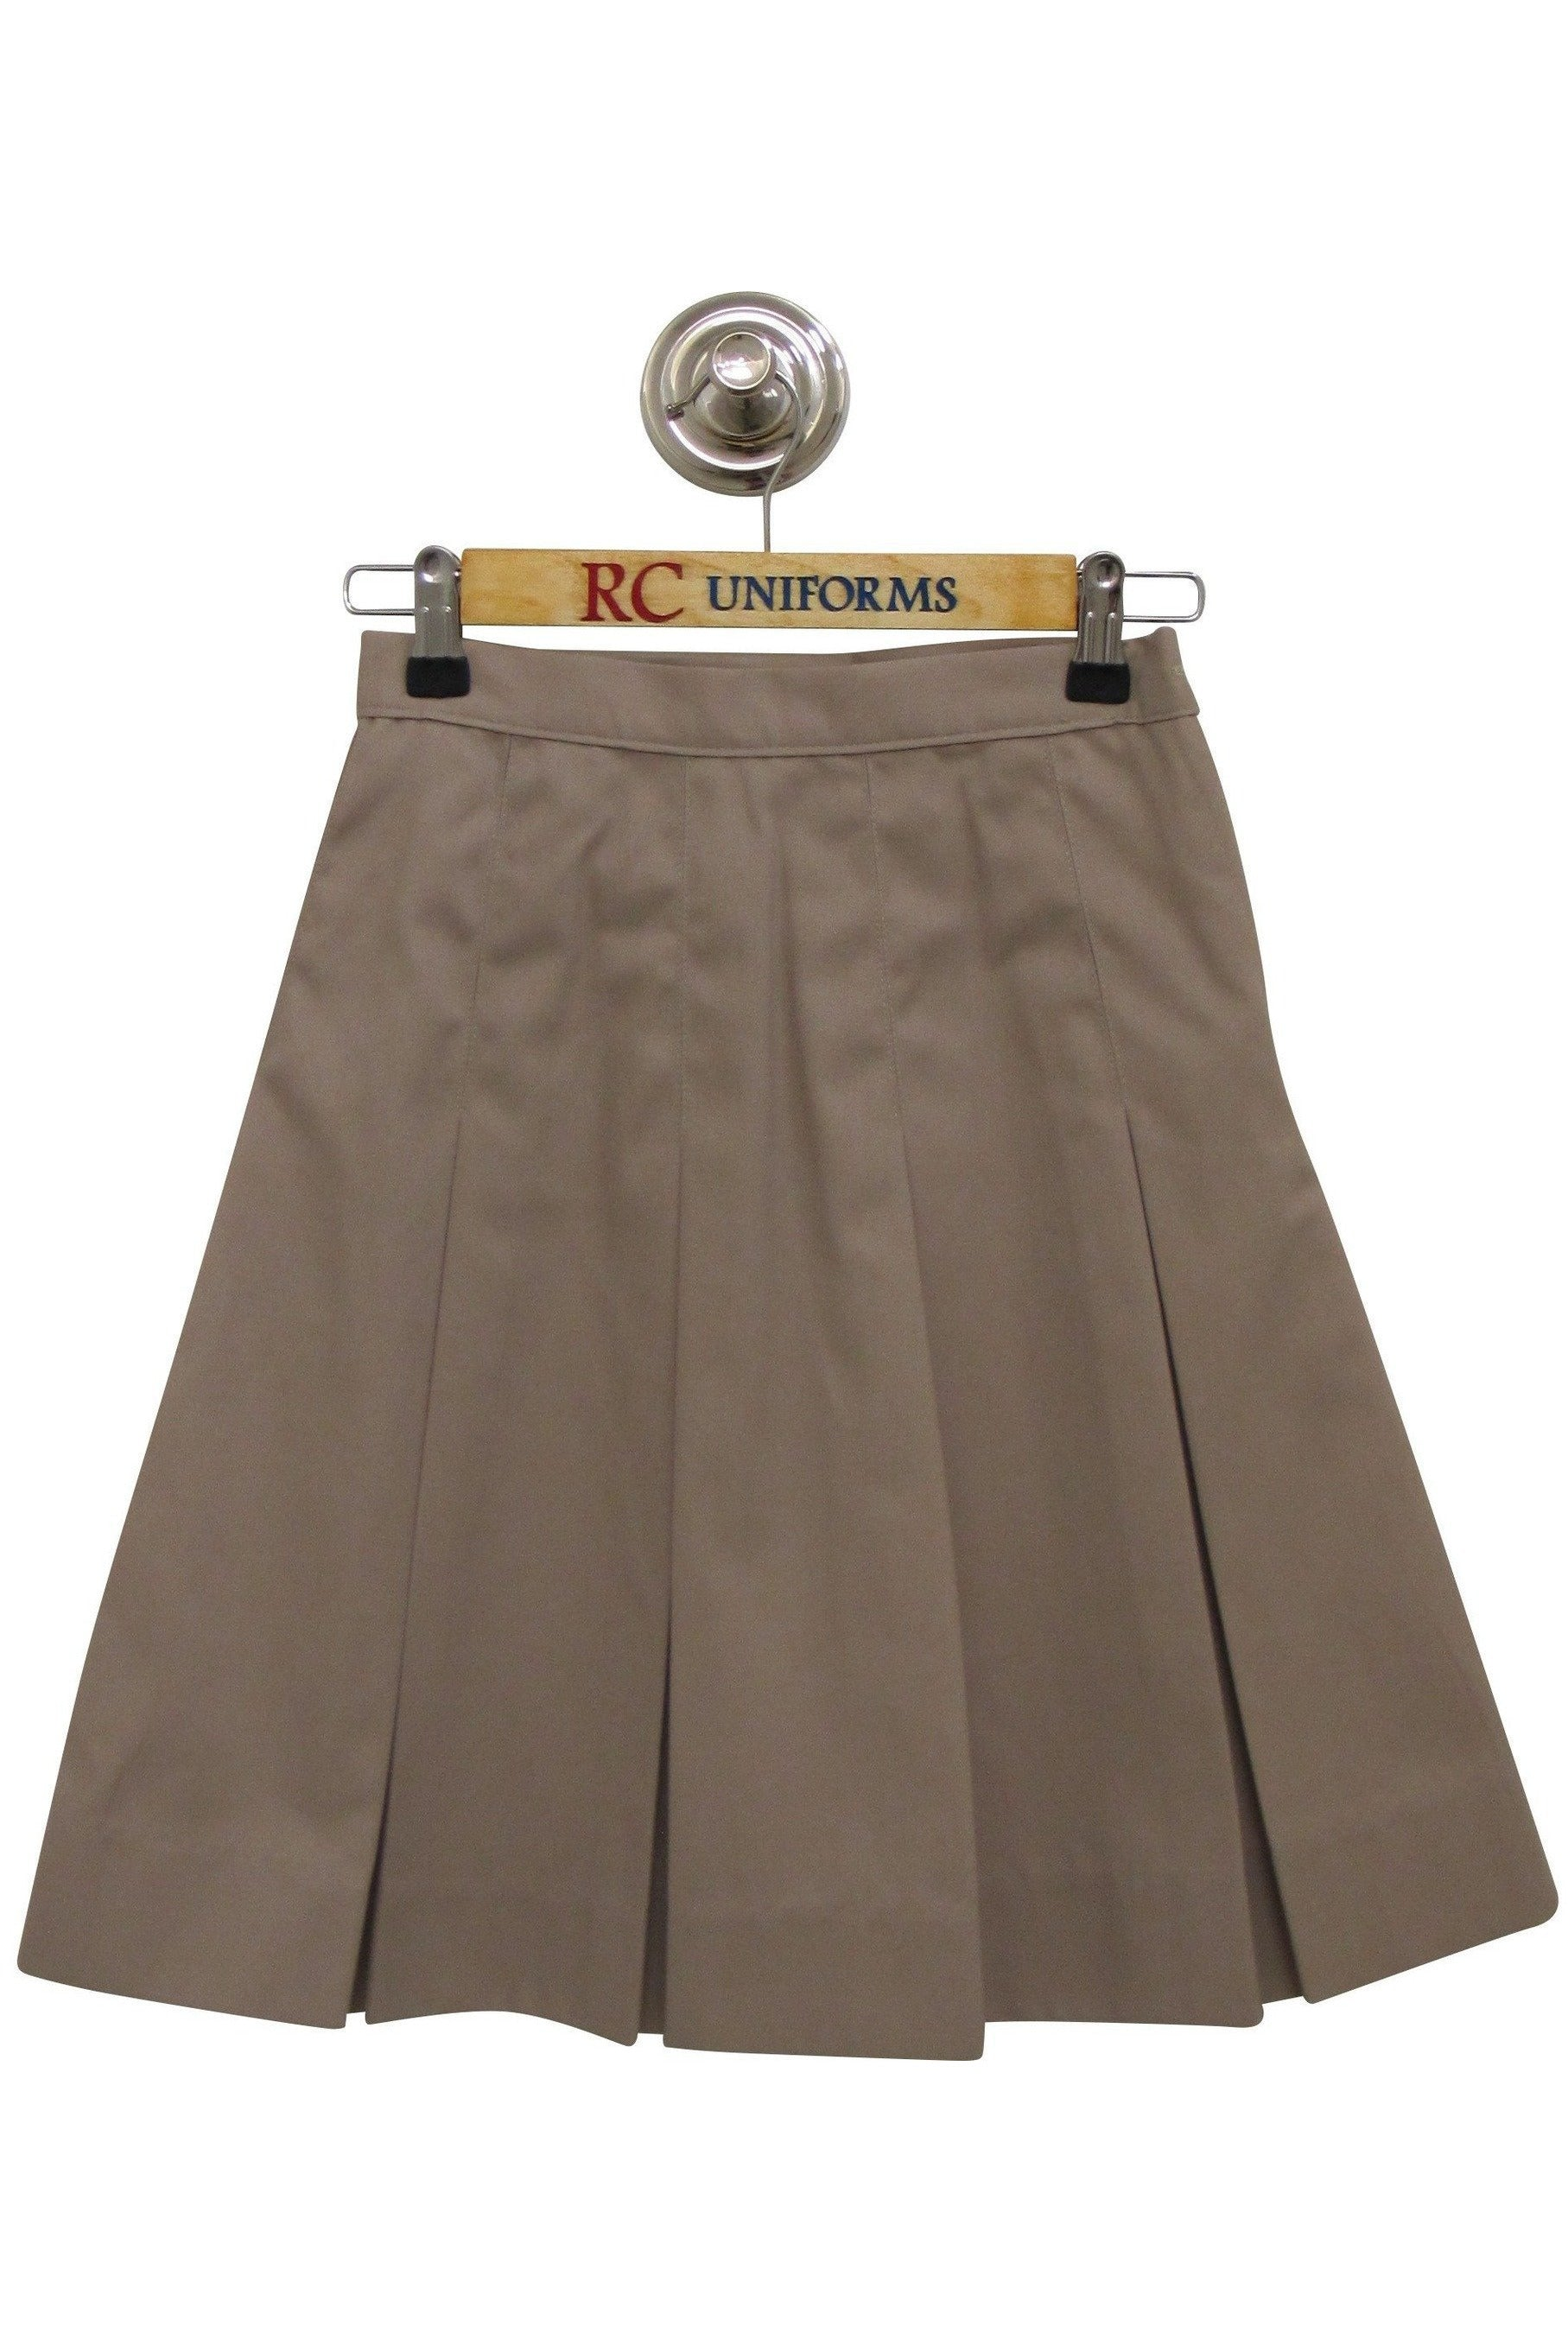 Khaki Box-Pleat Skirt - RC Uniforms